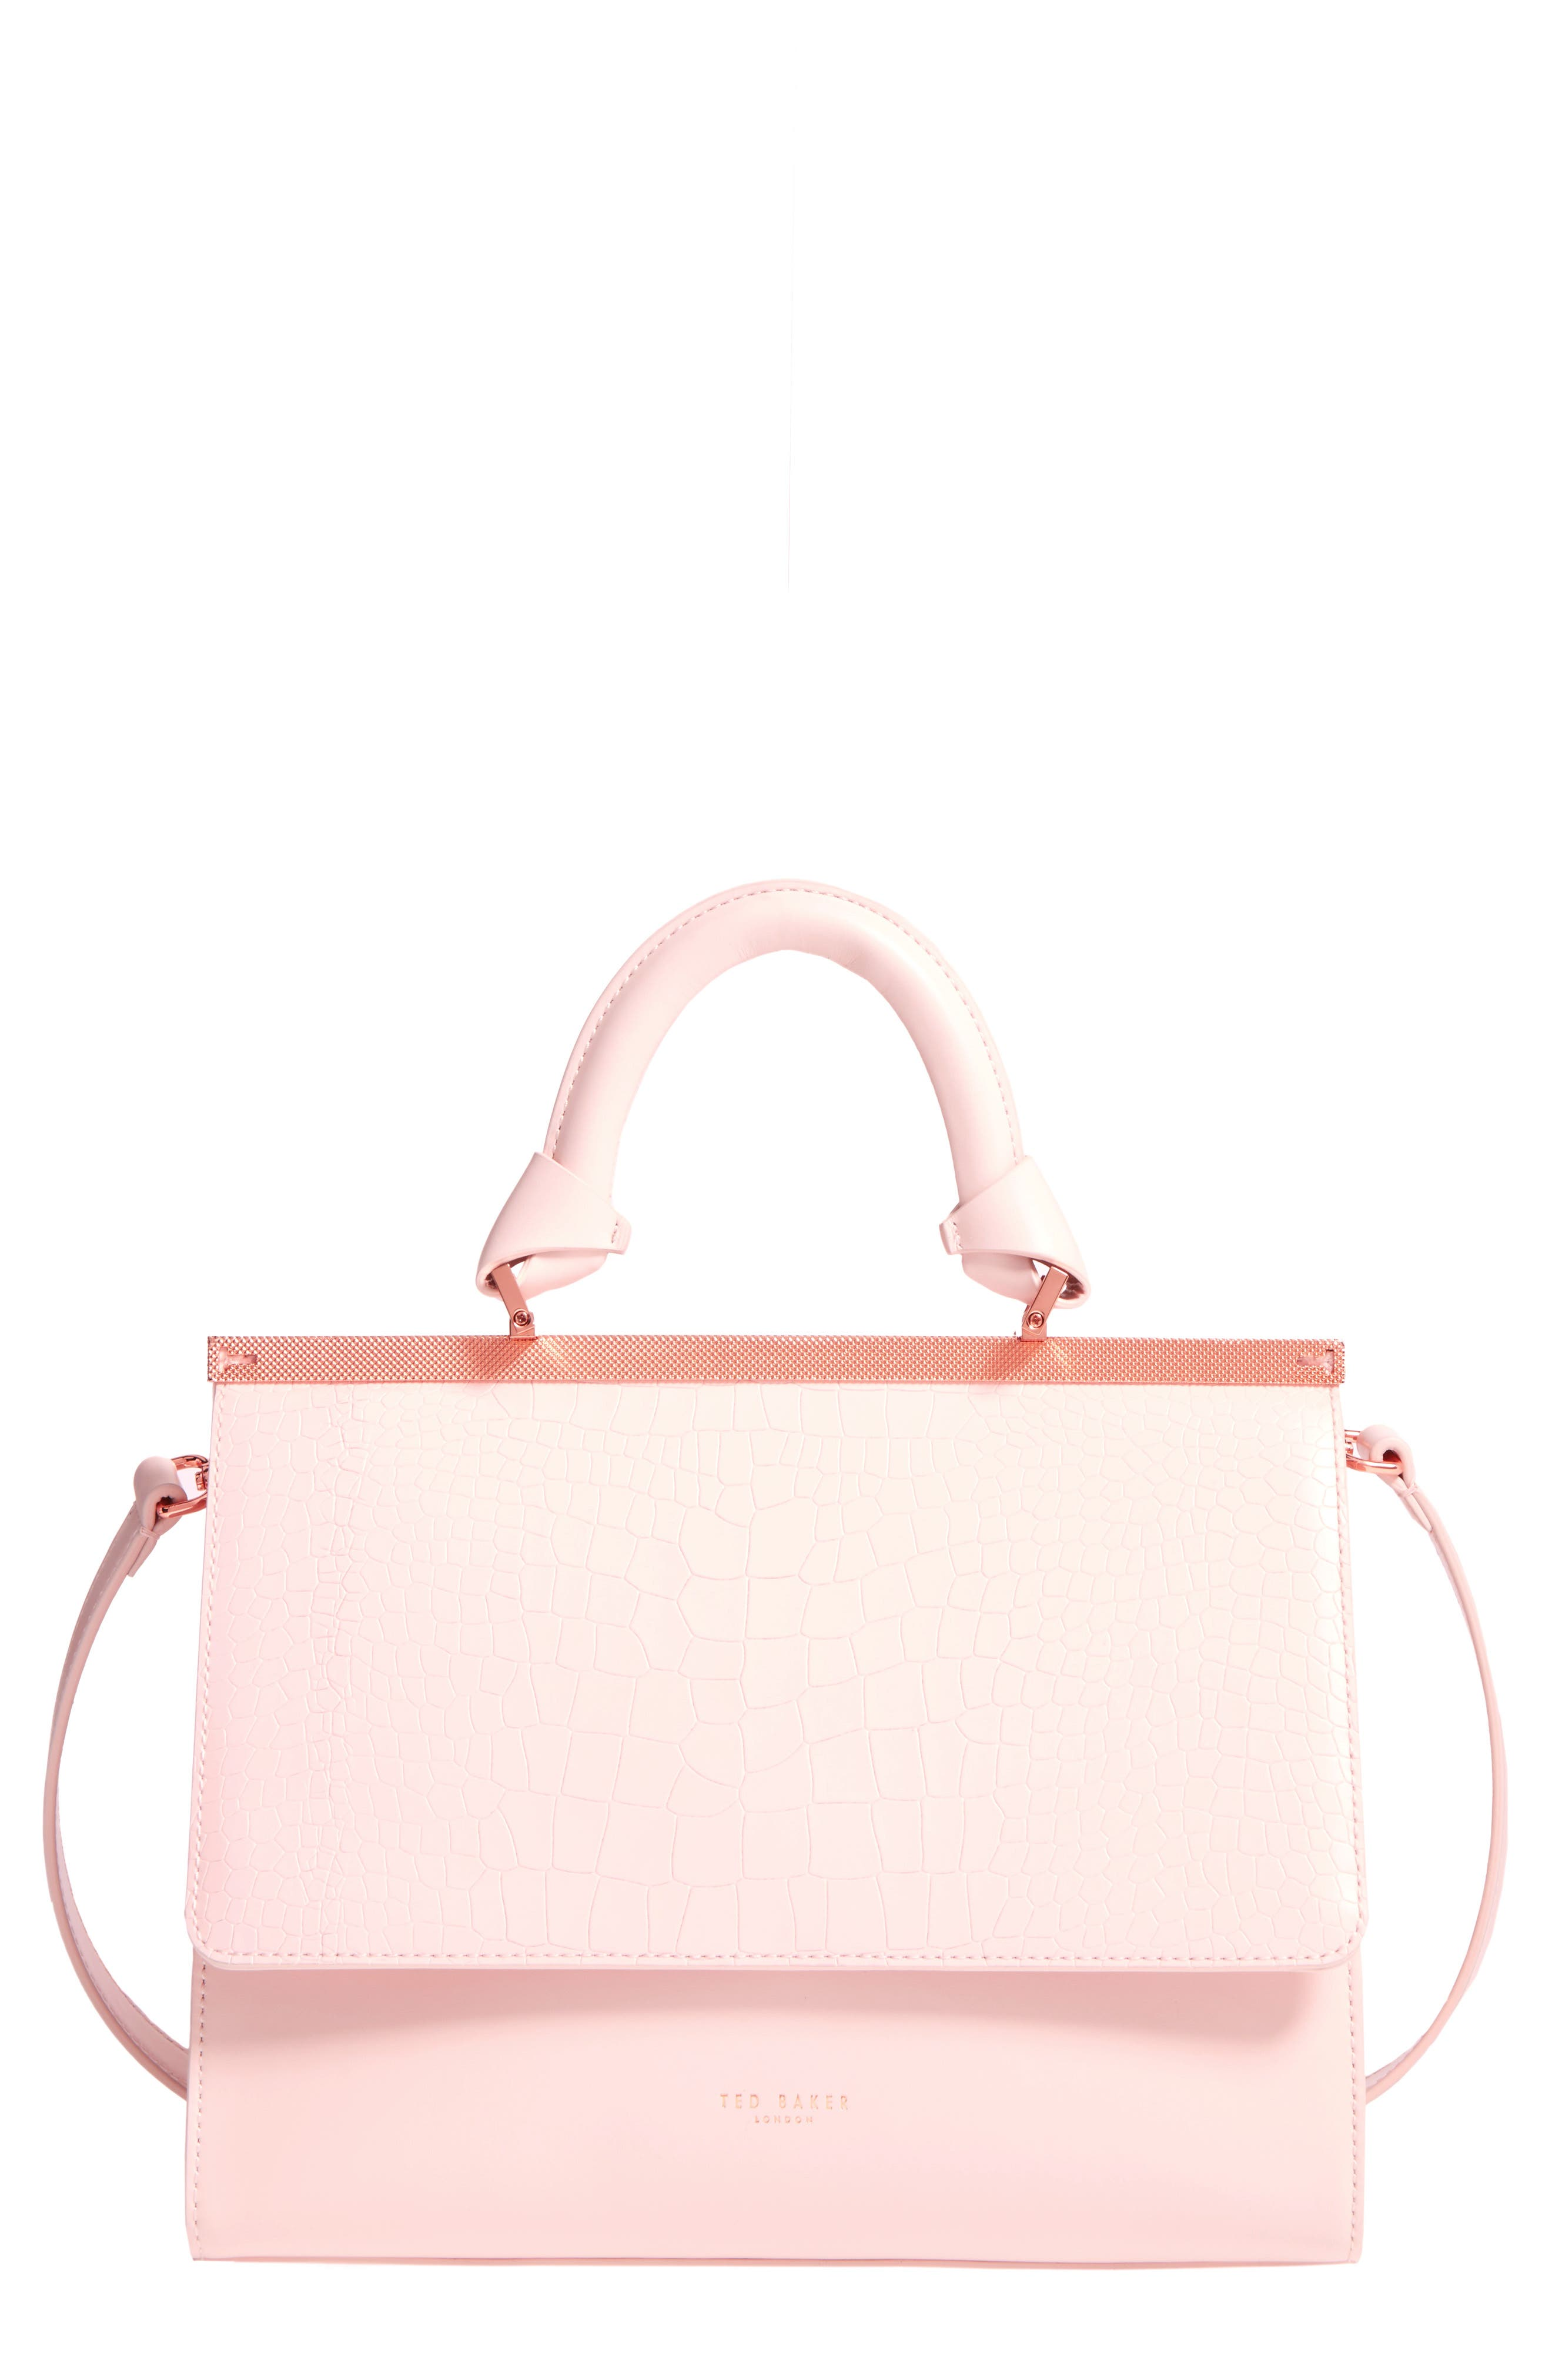 Croc Embossed Leather Satchel,                             Main thumbnail 1, color,                             Baby Pink